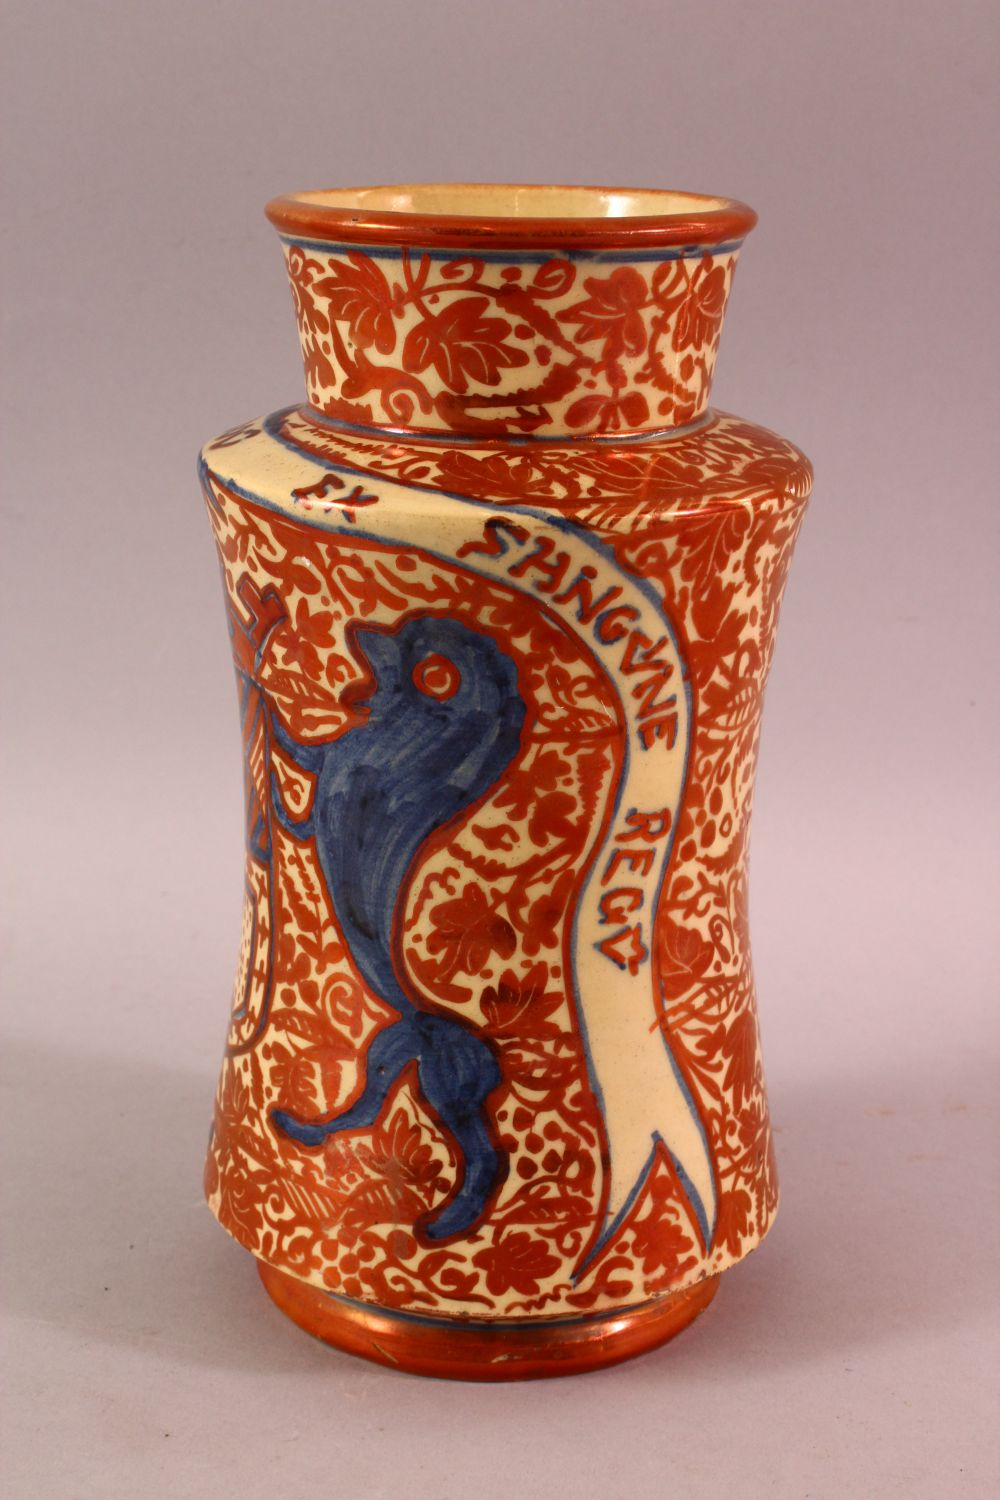 A SPANISH MORESQUE LUSTRE POTTERY MEDICINE JAR, decorated with a copper lustre and lion - Image 4 of 5